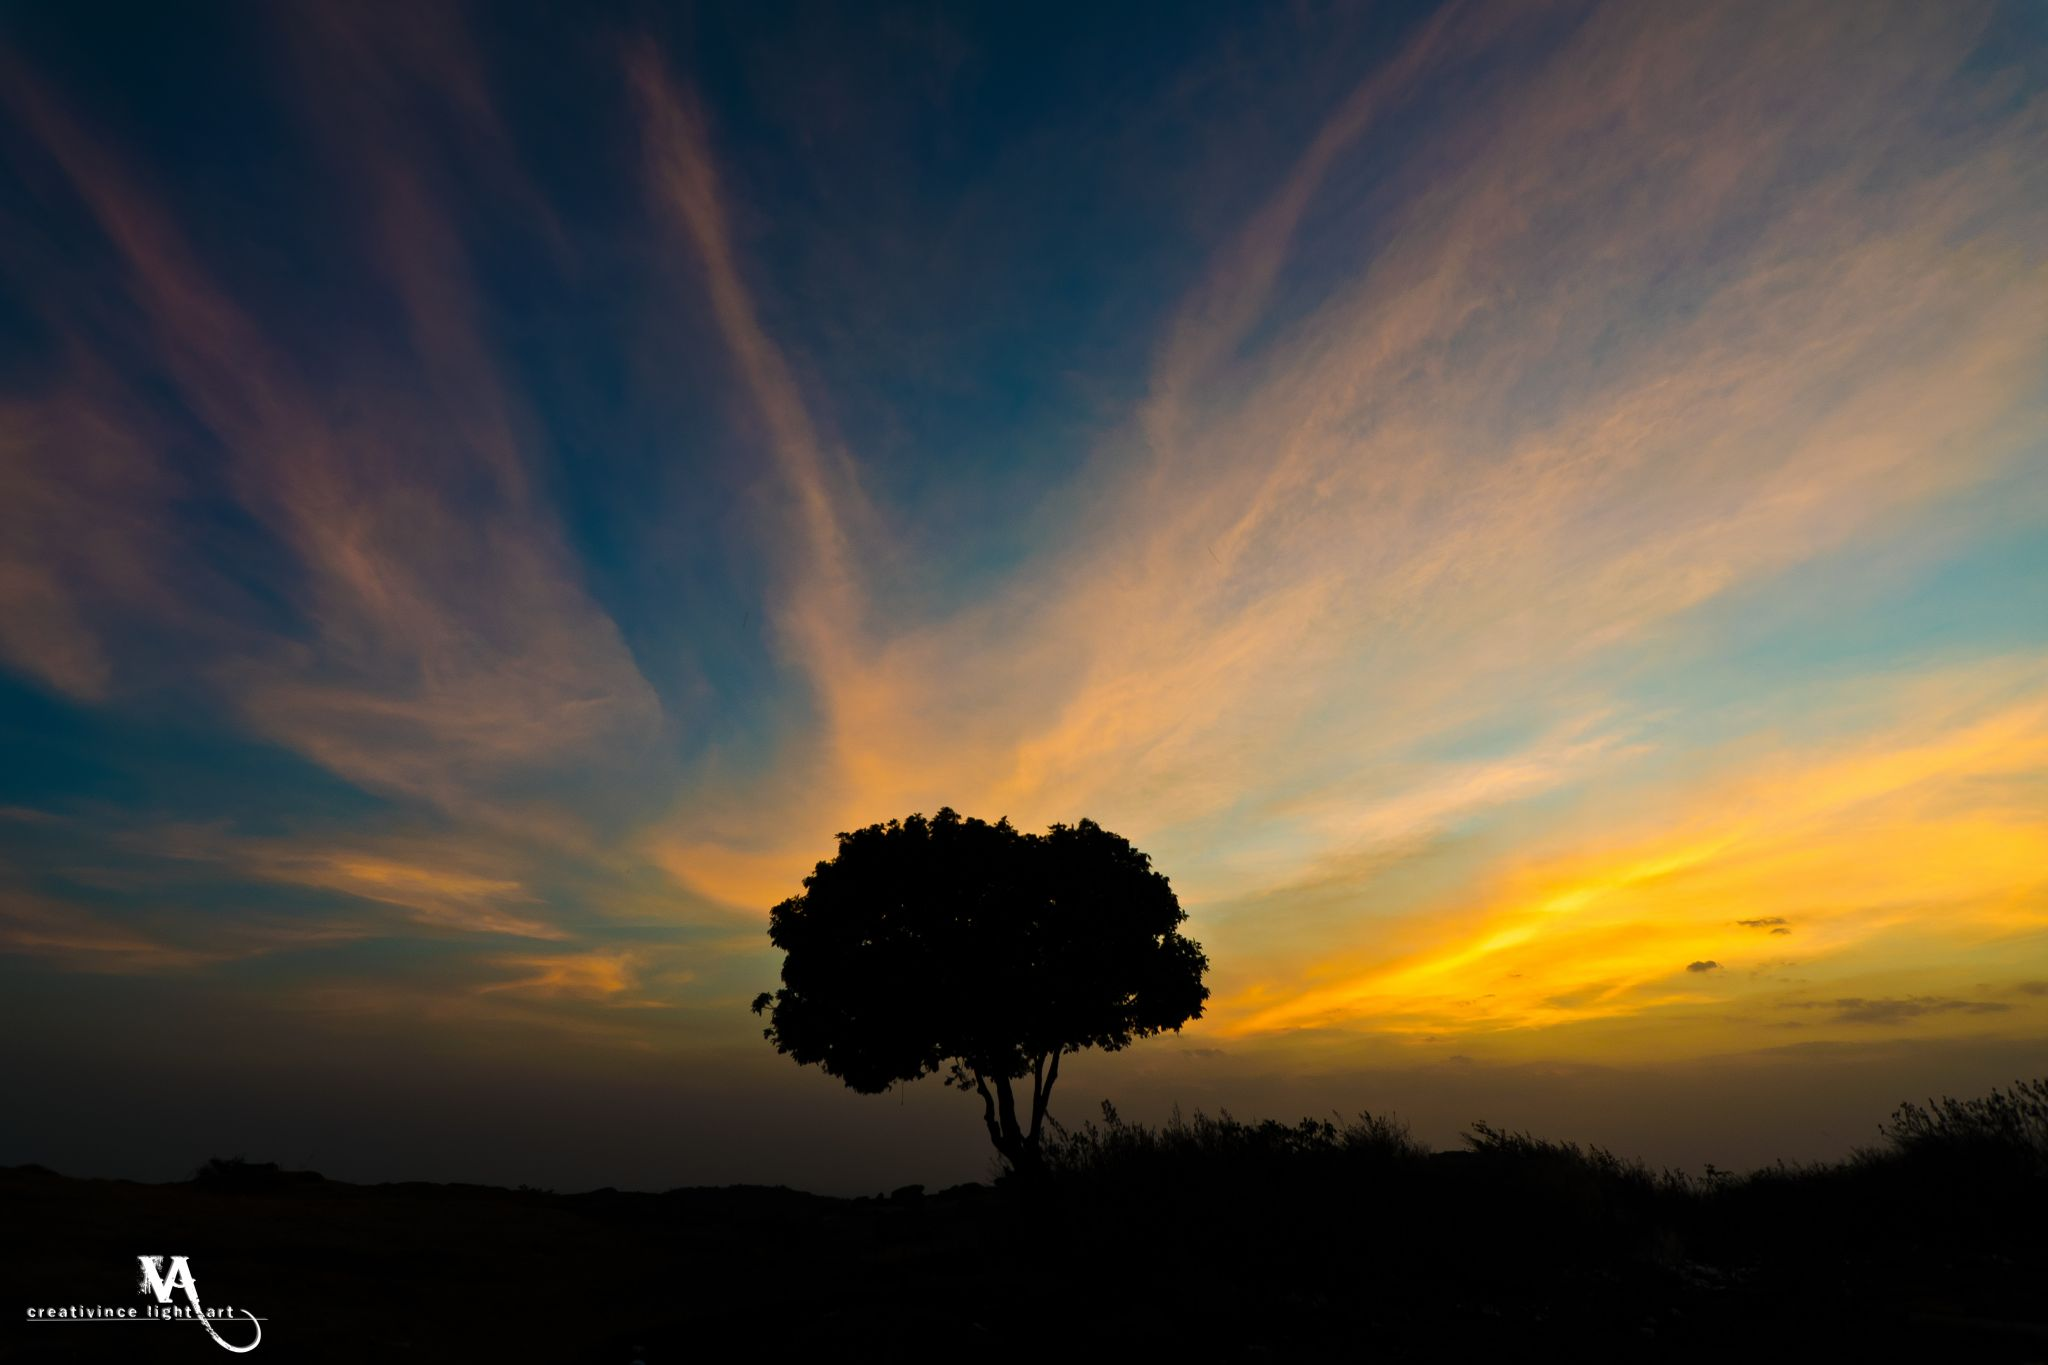 Lone Tree Silhouette, Nandi Hills, India